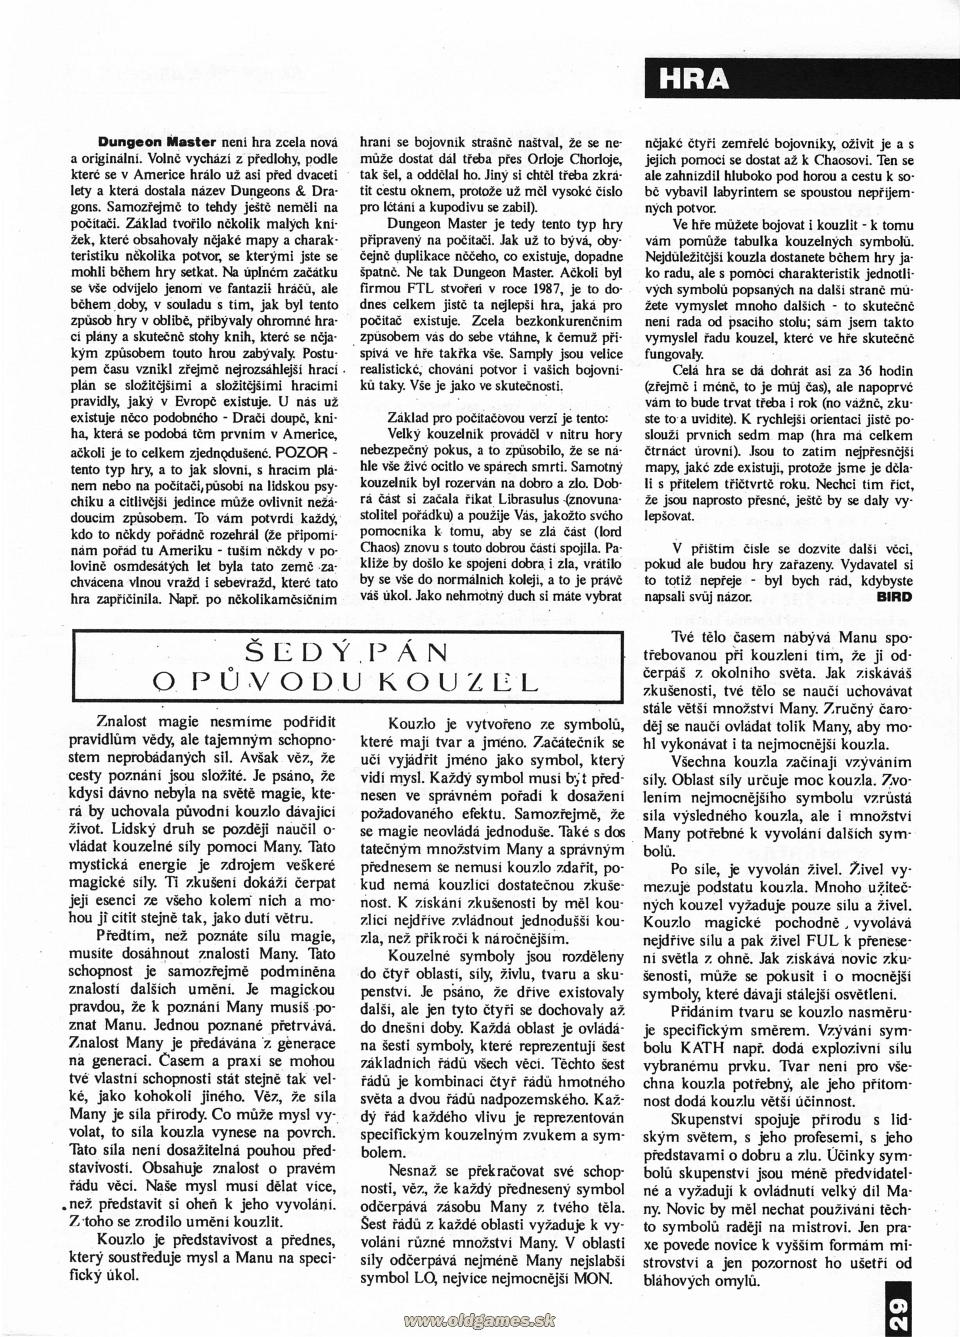 Dungeon Master Hints published in Czech magazine 'Amiga Magazin', Issue #3 July 1991, Page 29